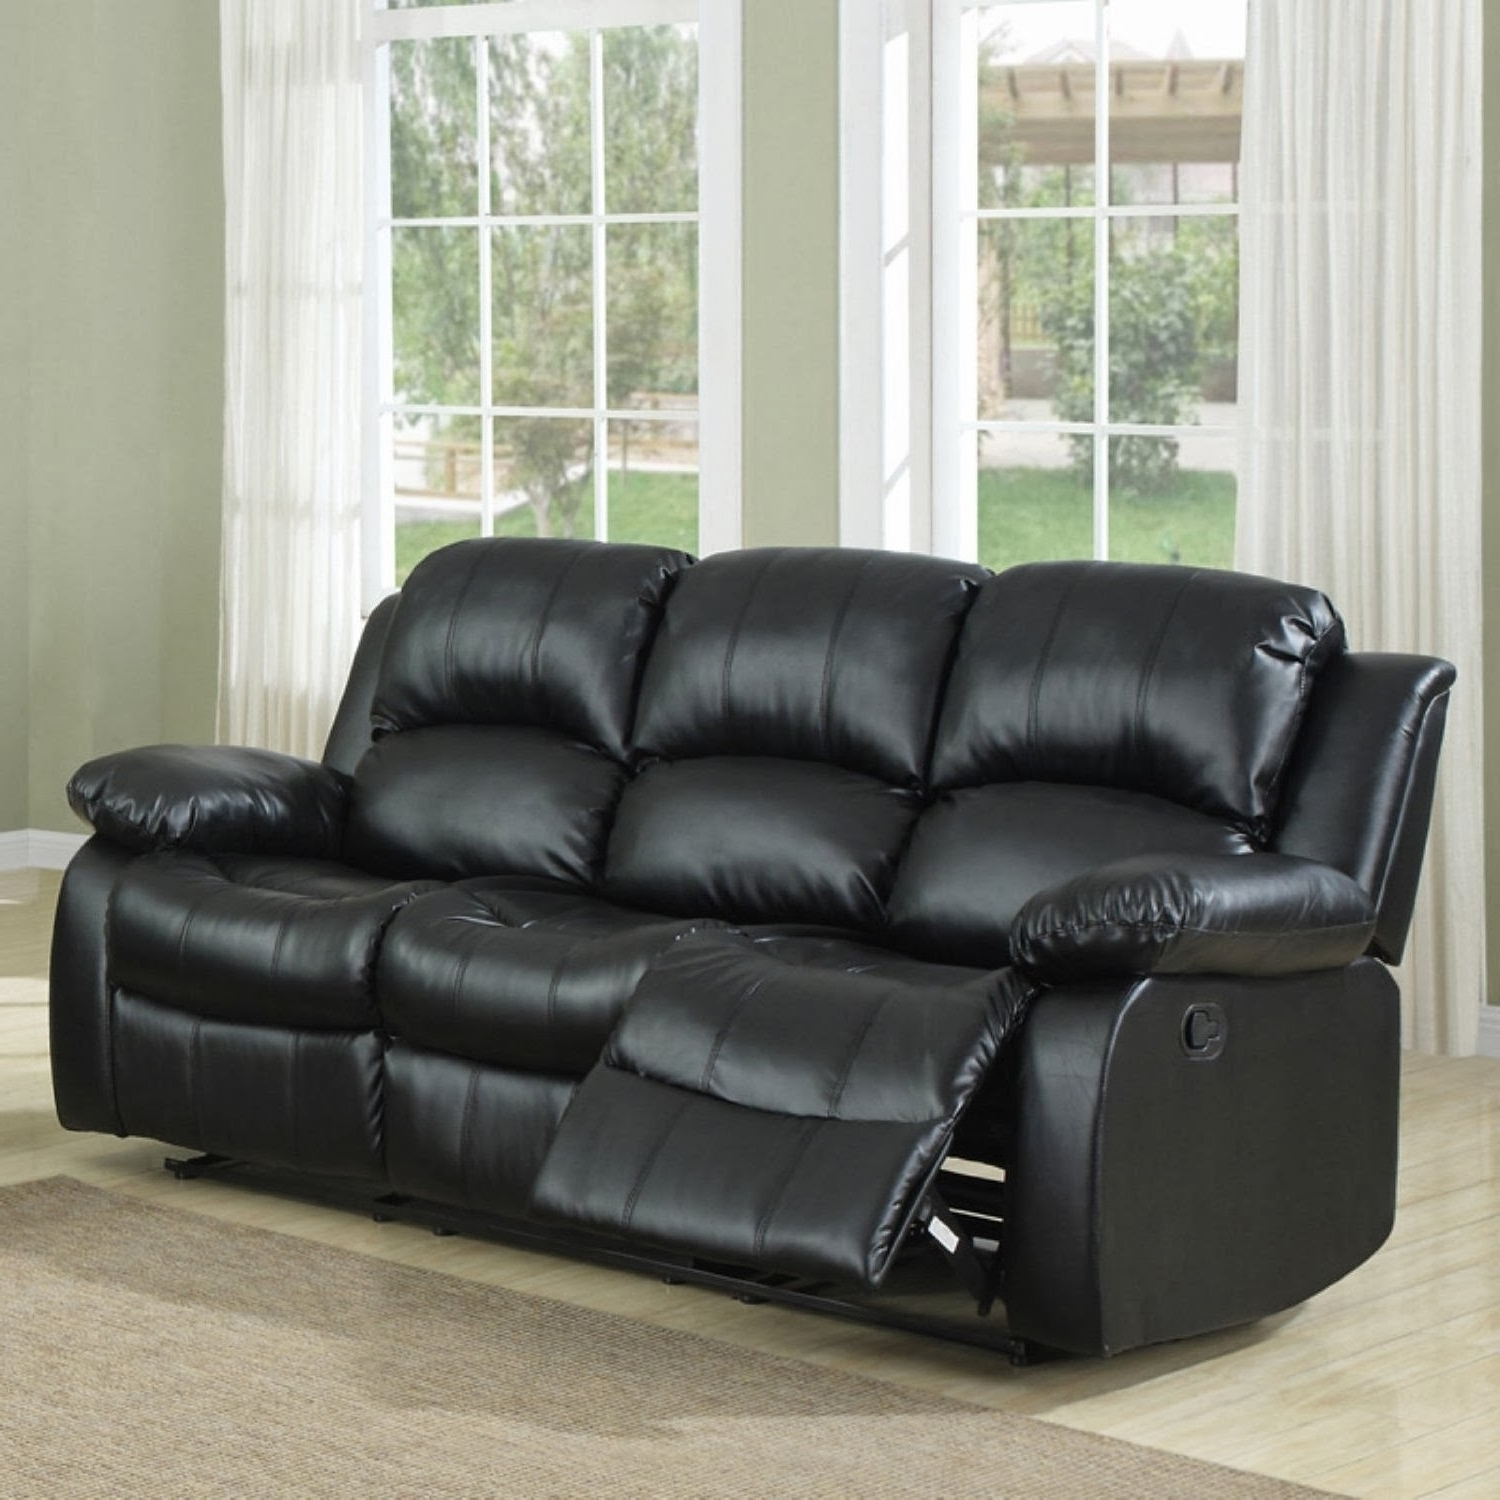 Collection Sectional Sofas Rochester Ny – Mediasupload Regarding Well Liked Rochester Ny Sectional Sofas (View 9 of 20)